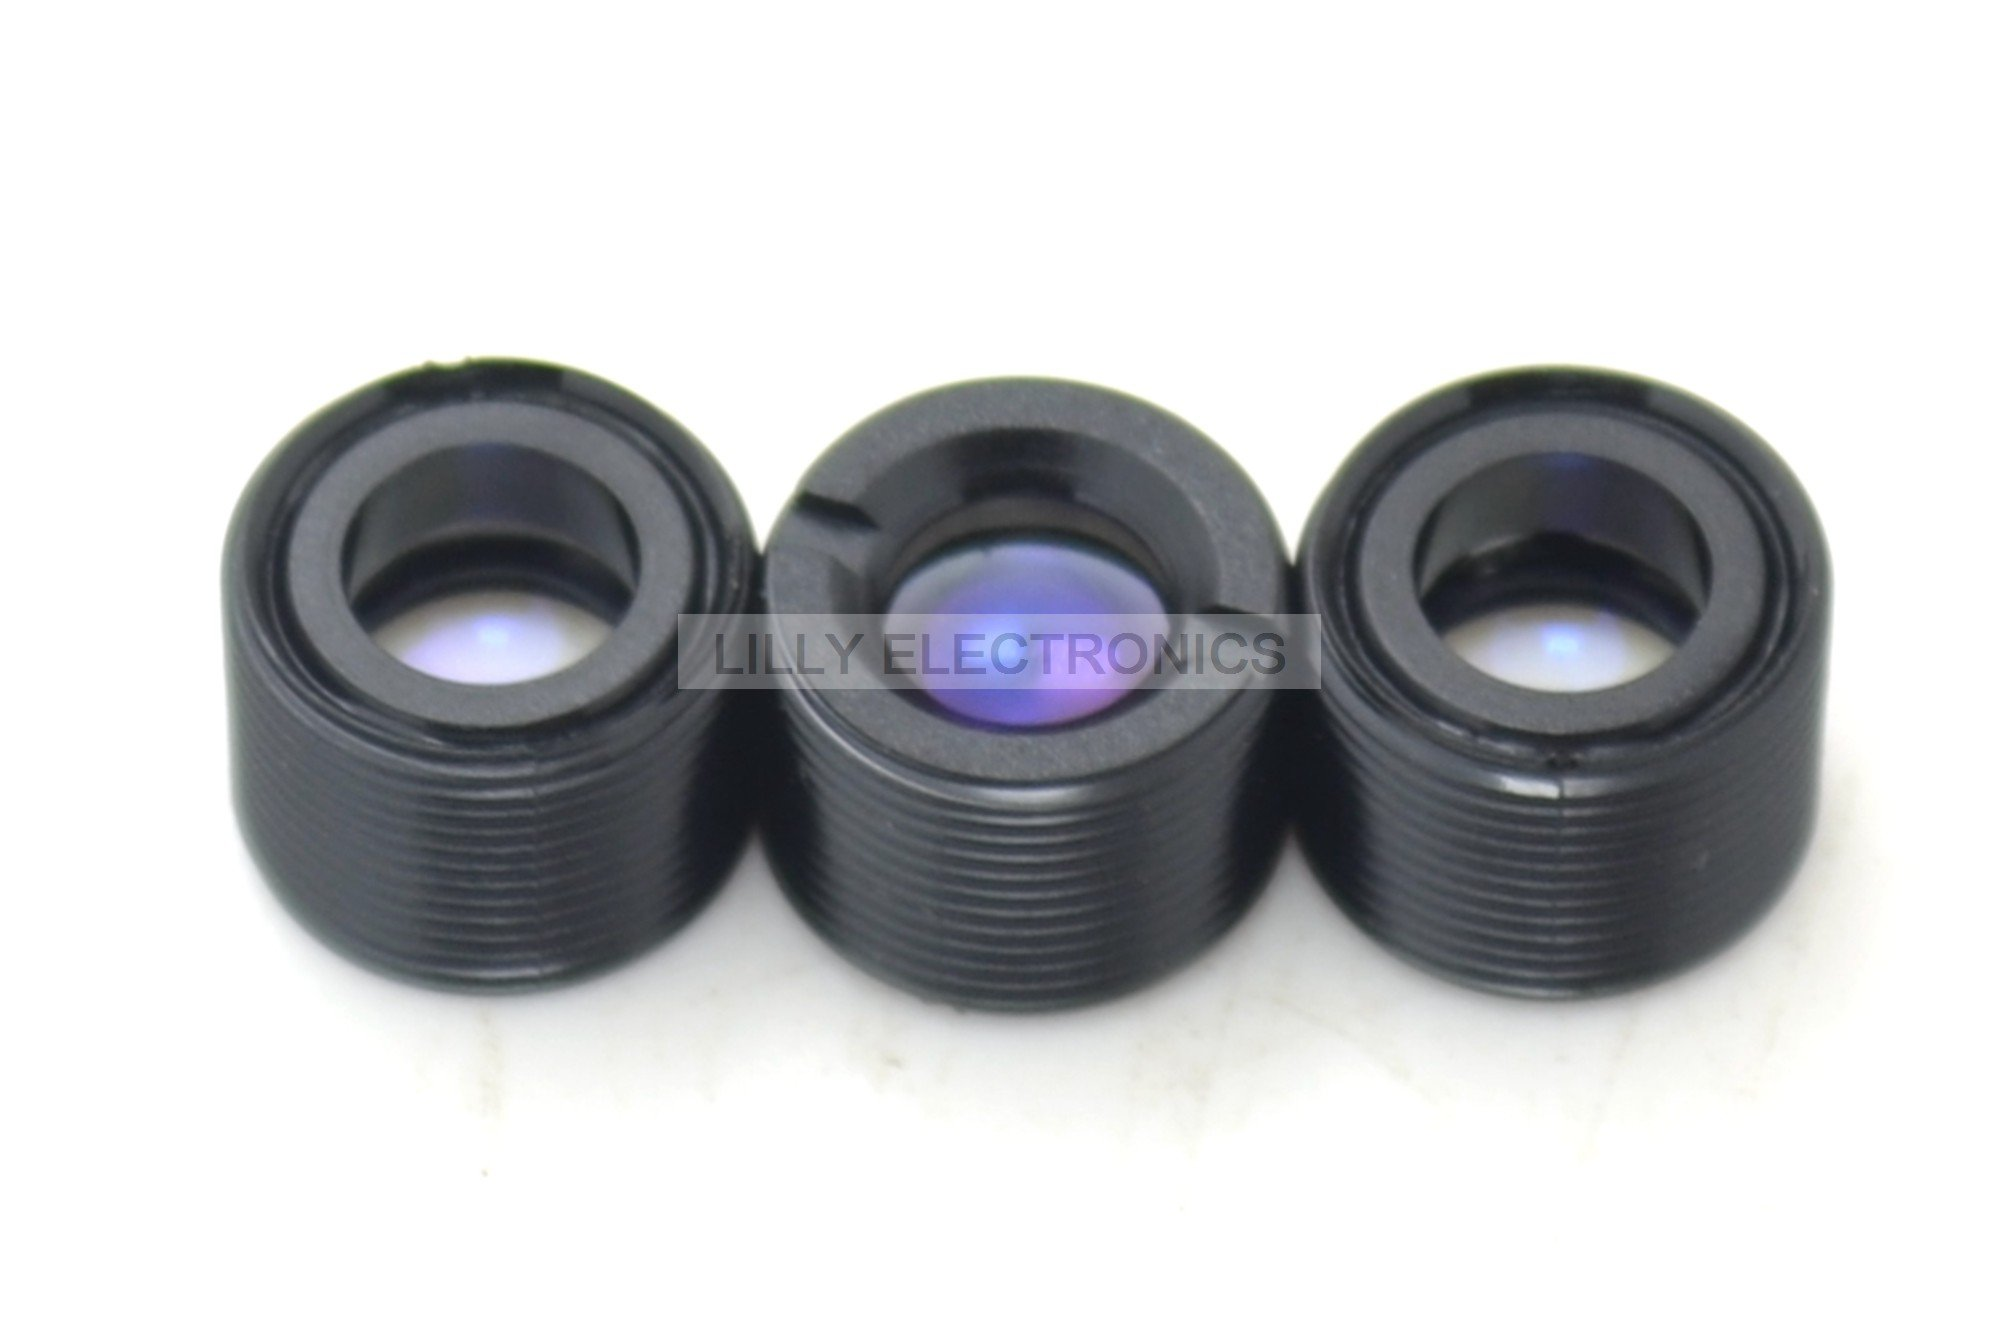 3pcs Coated Plastic Collimating Lens for 630nm-680nm Laser Module with M9x0.5 Screw